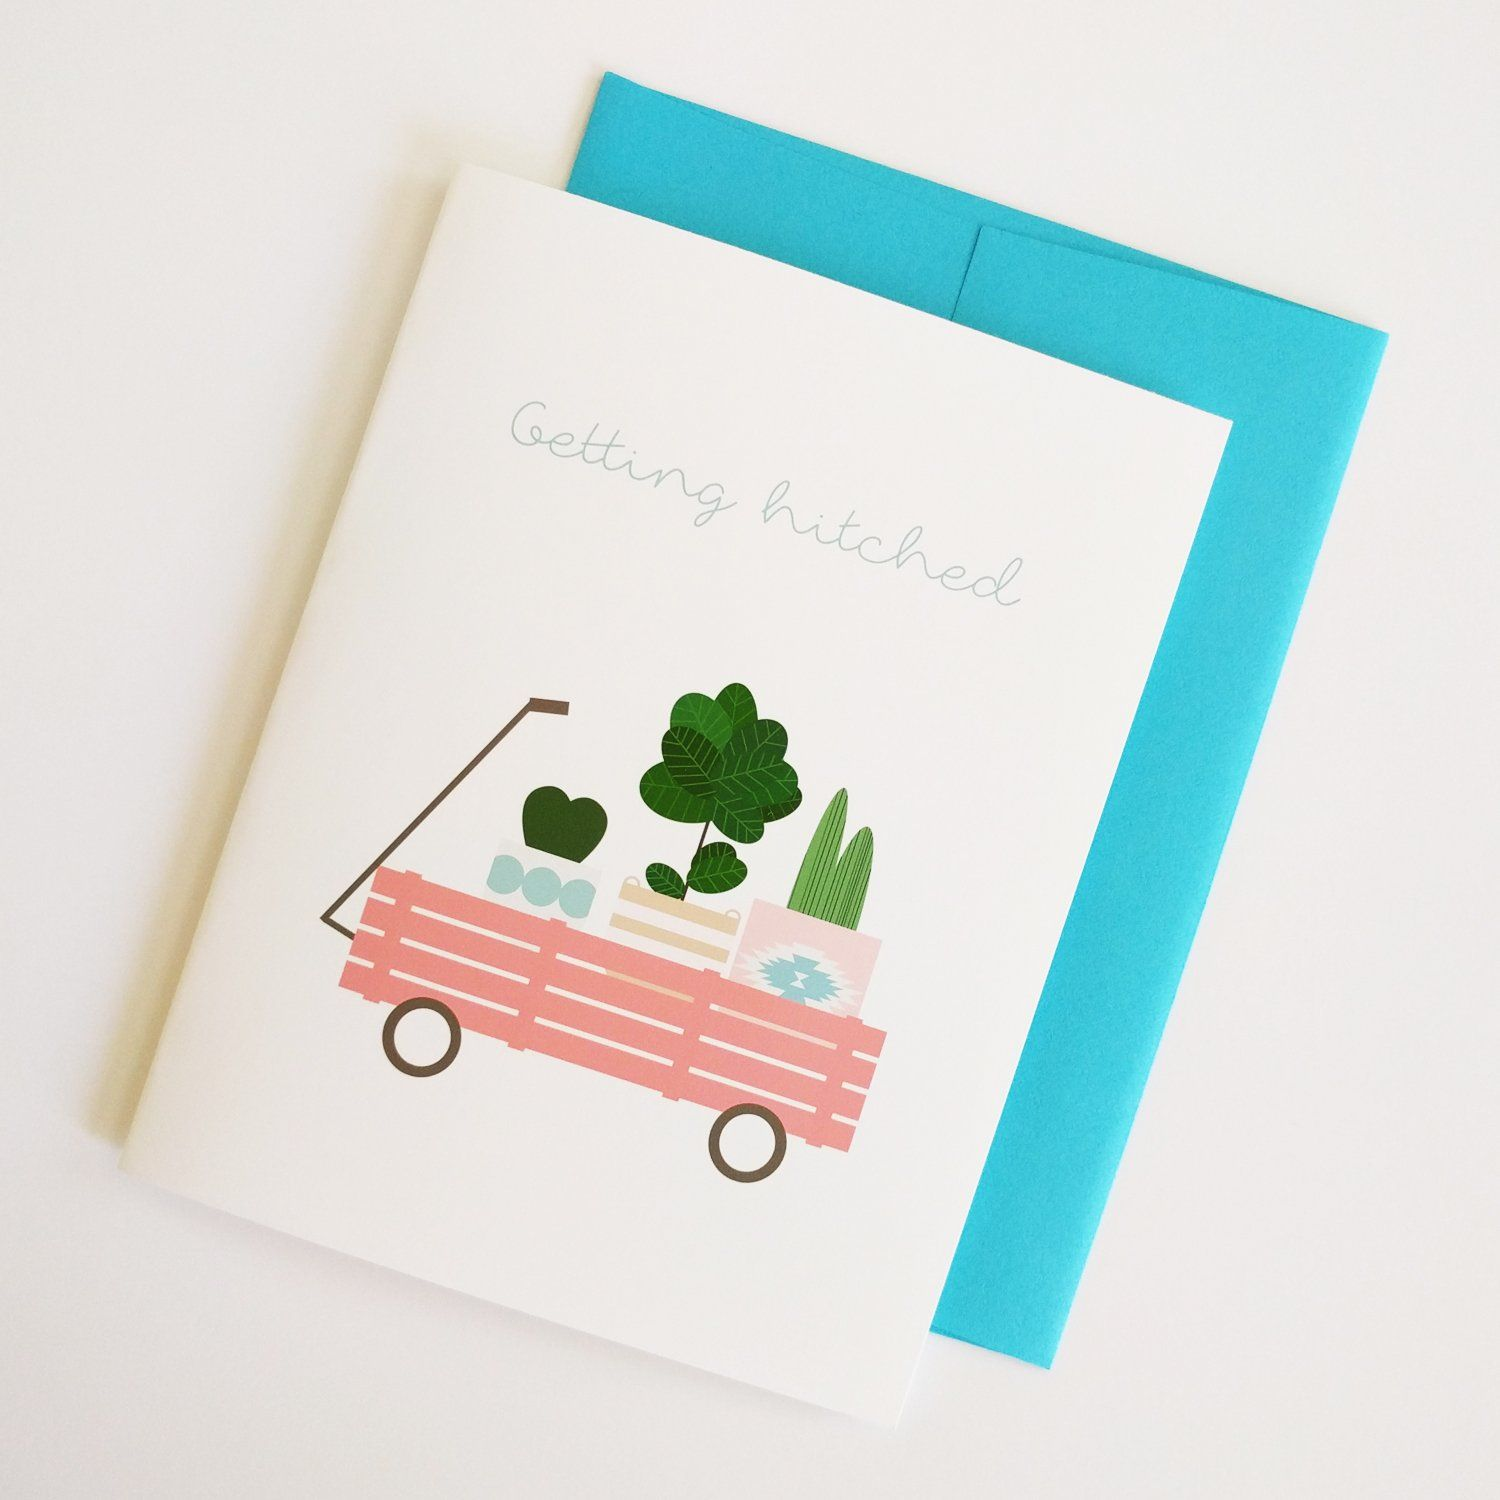 Getting Hitched Card Bungalow Blush Greeting Cards Pinterest